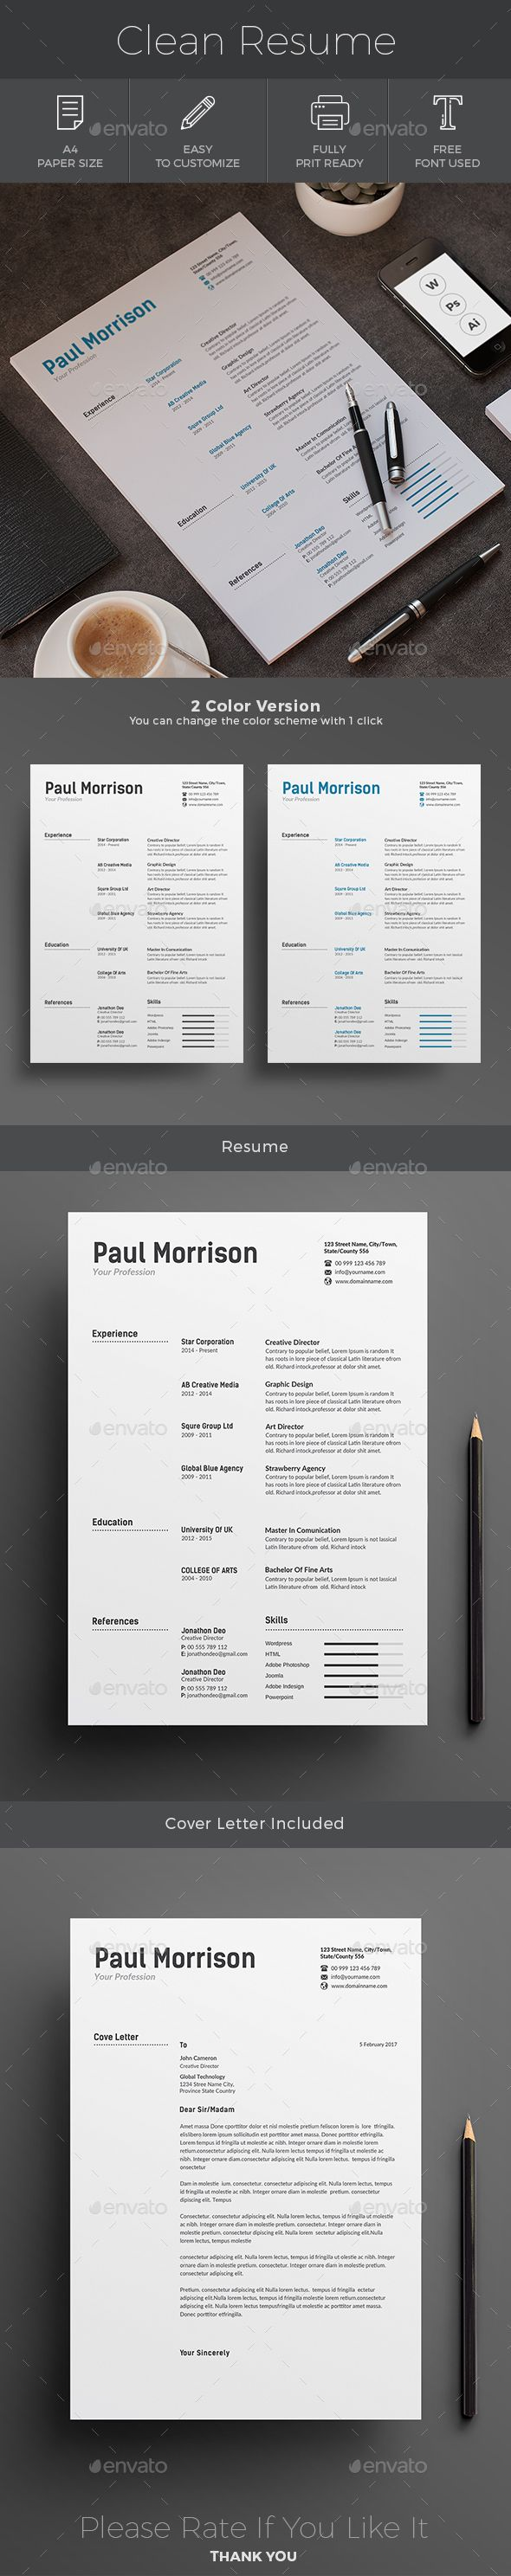 Resume A4 Template PSD AI Illustrator 48